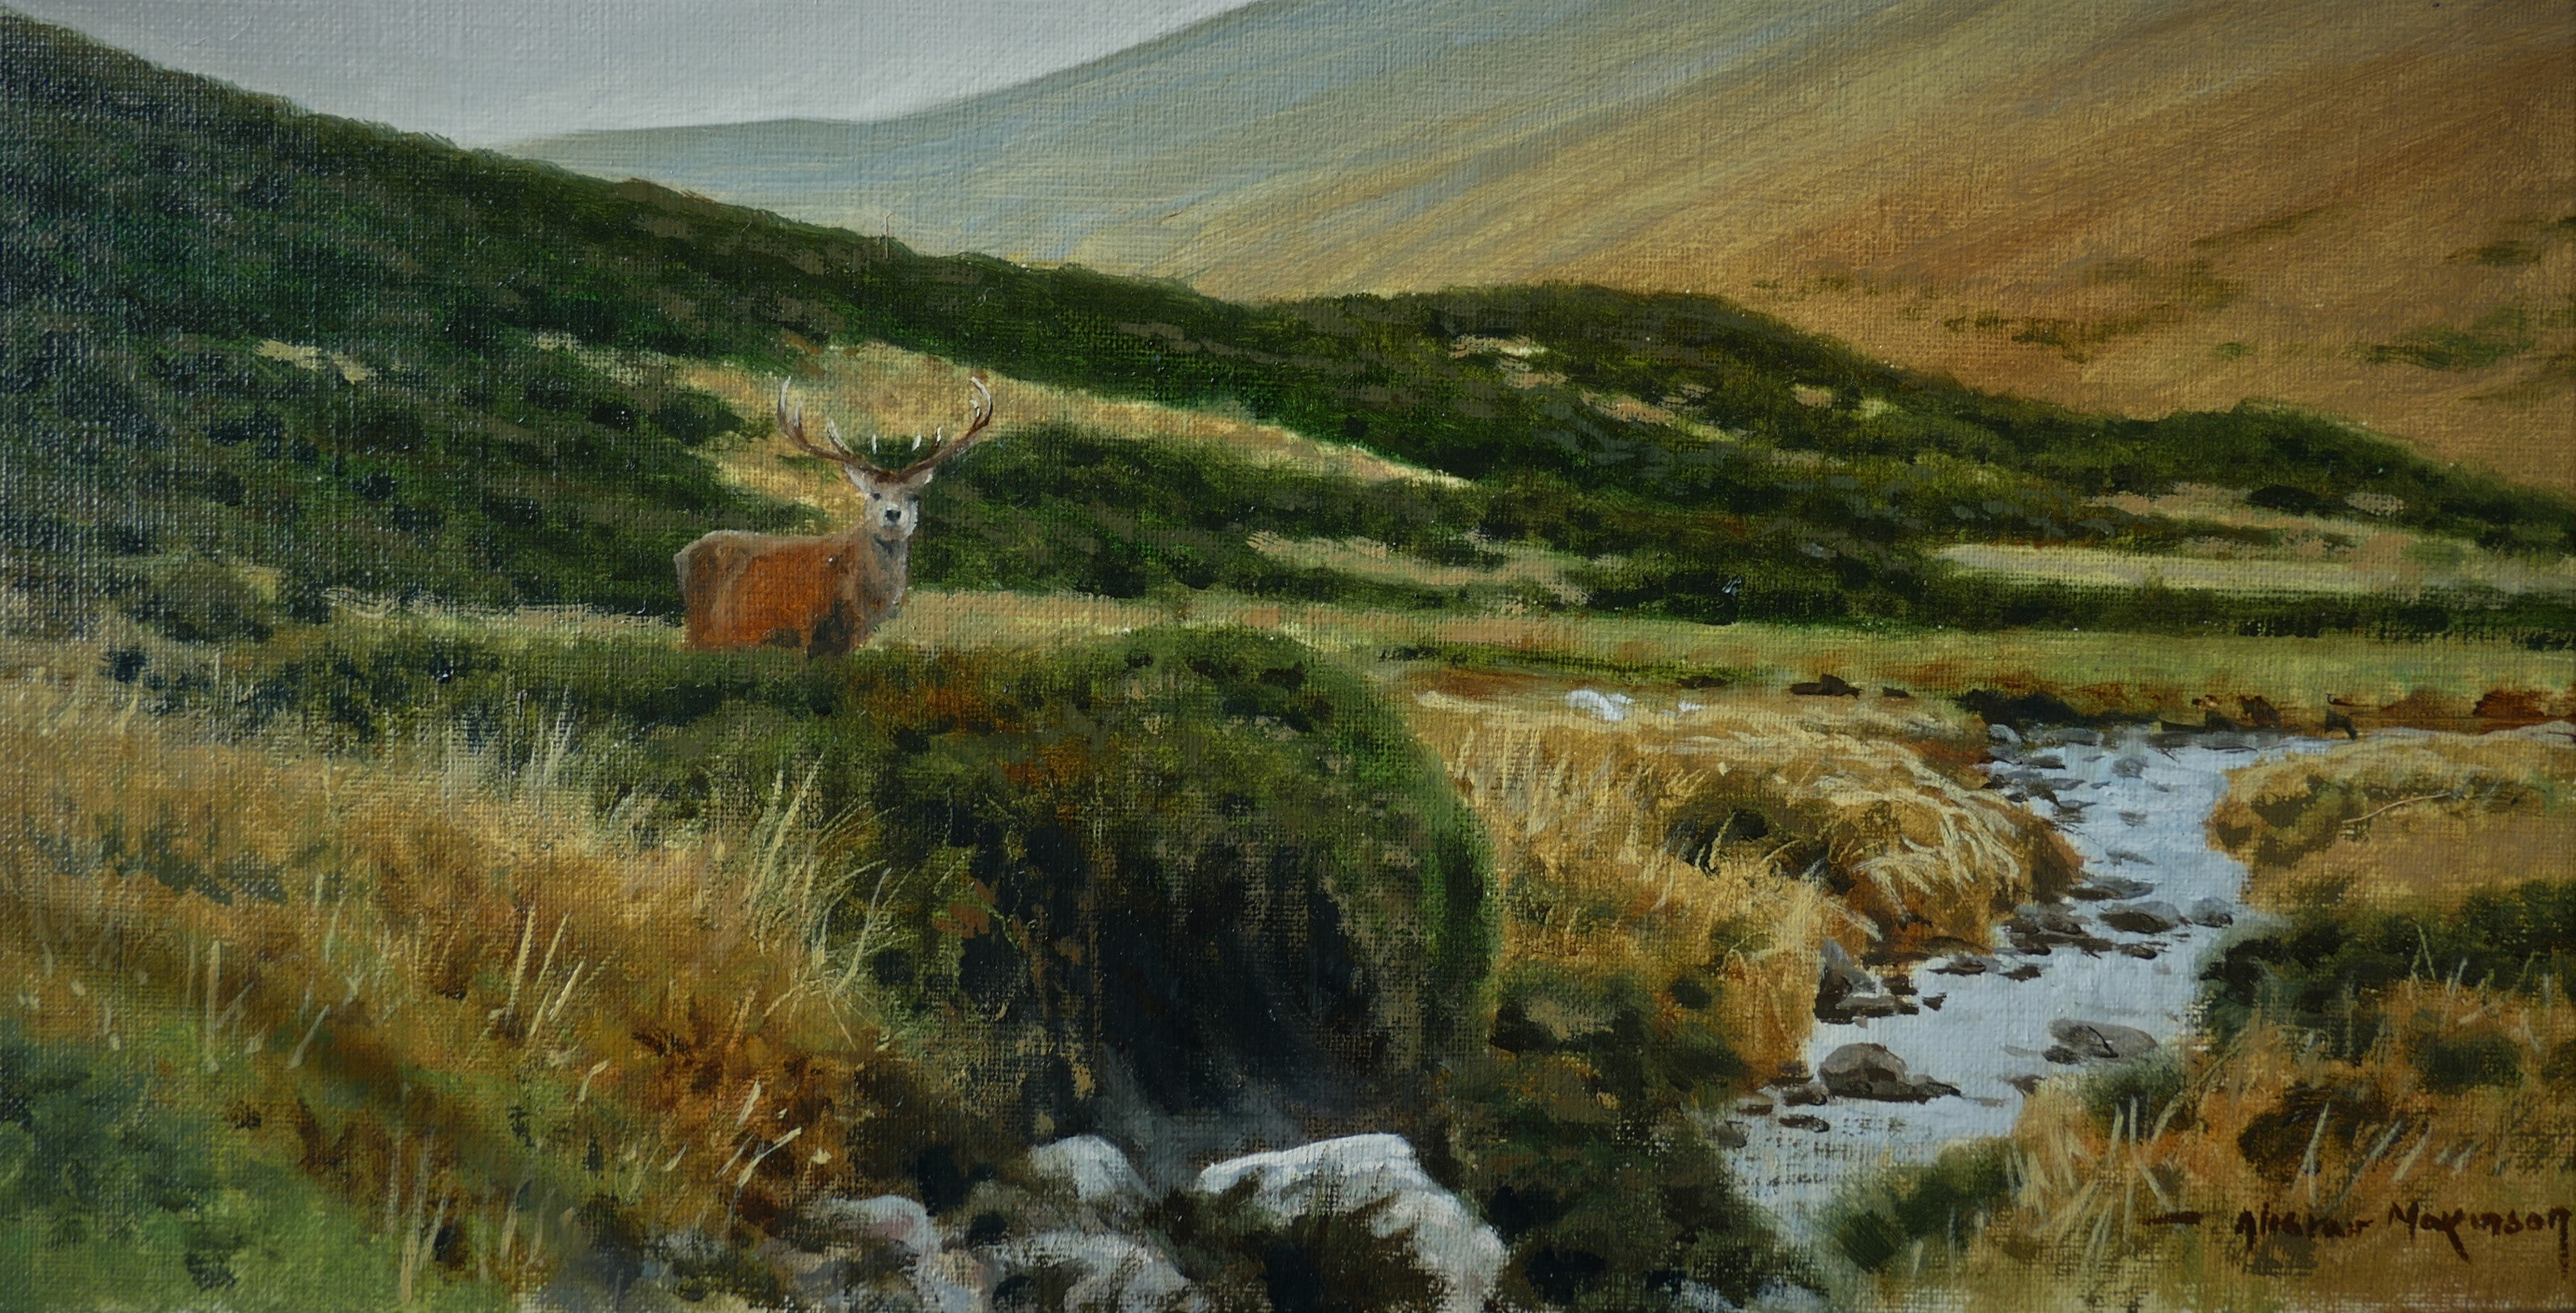 'Long Stag' - Original Oil Painting by Alistair Makinson - 15 x 30cm